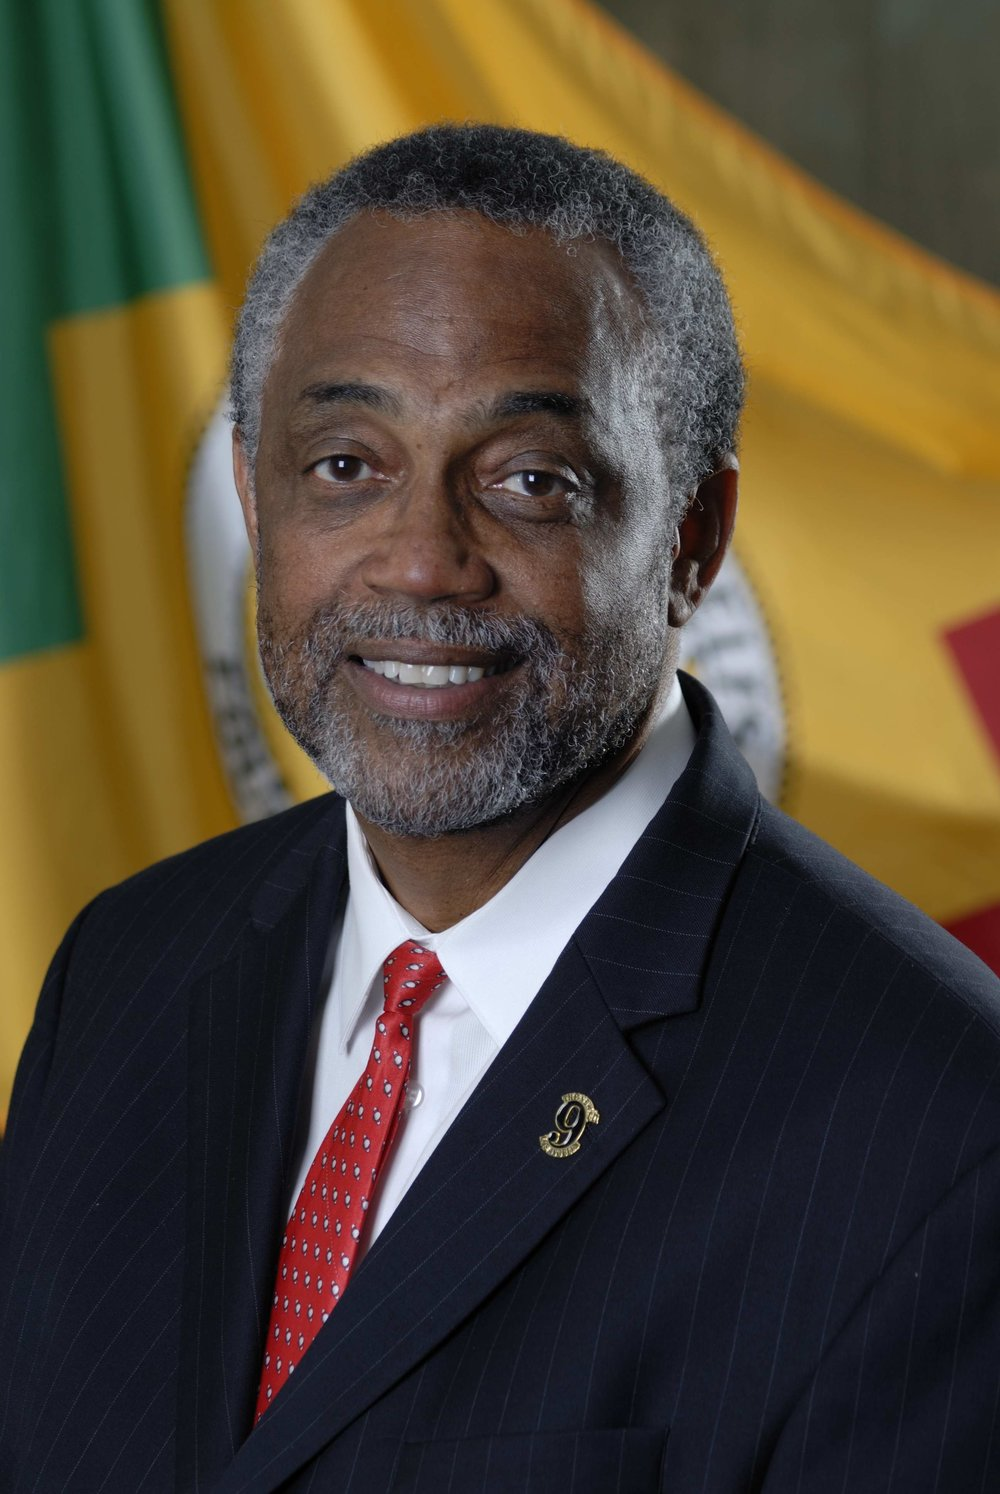 Councilman Curren D. Price  City of Los Angeles, District 9